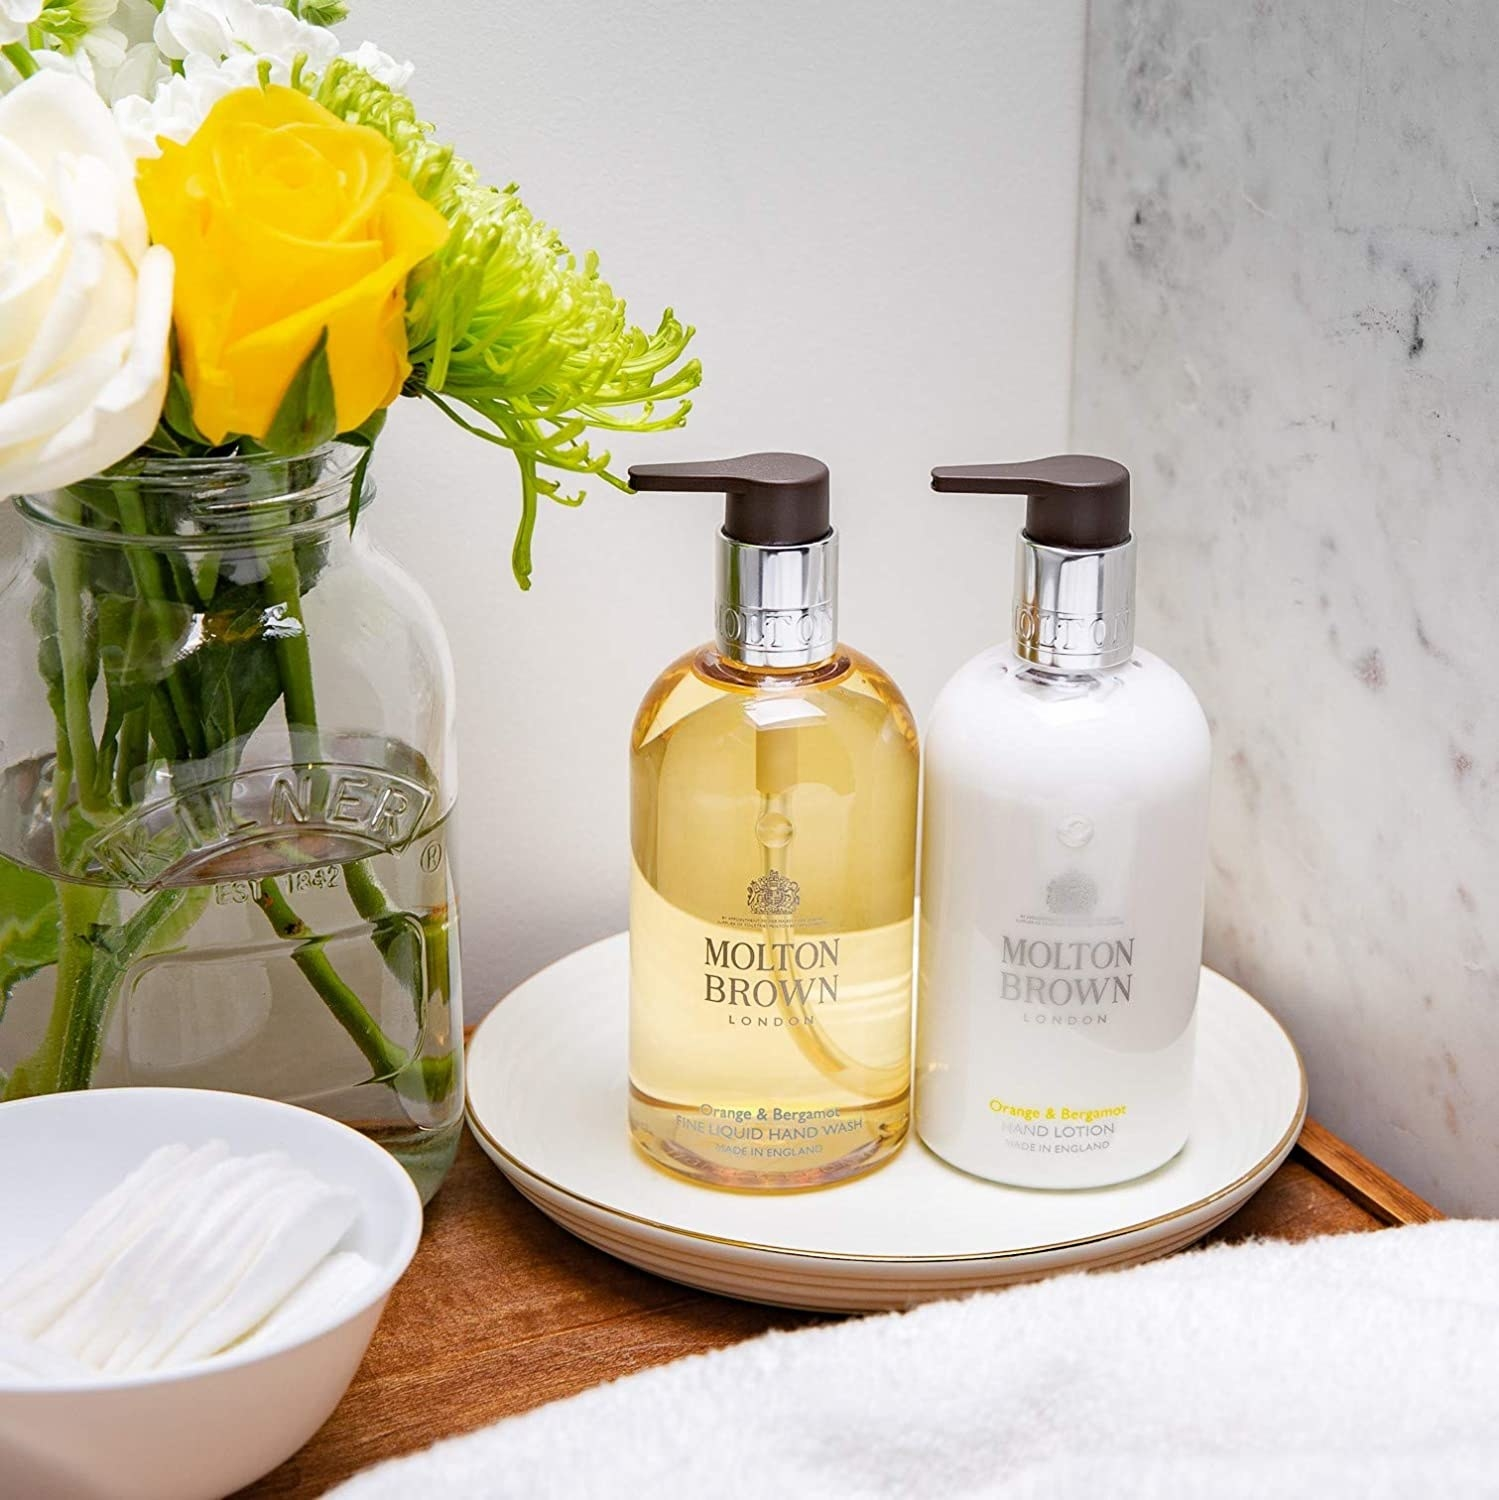 A duo of Molton brown hand soap and hand lotion on a tray in a bathroom.